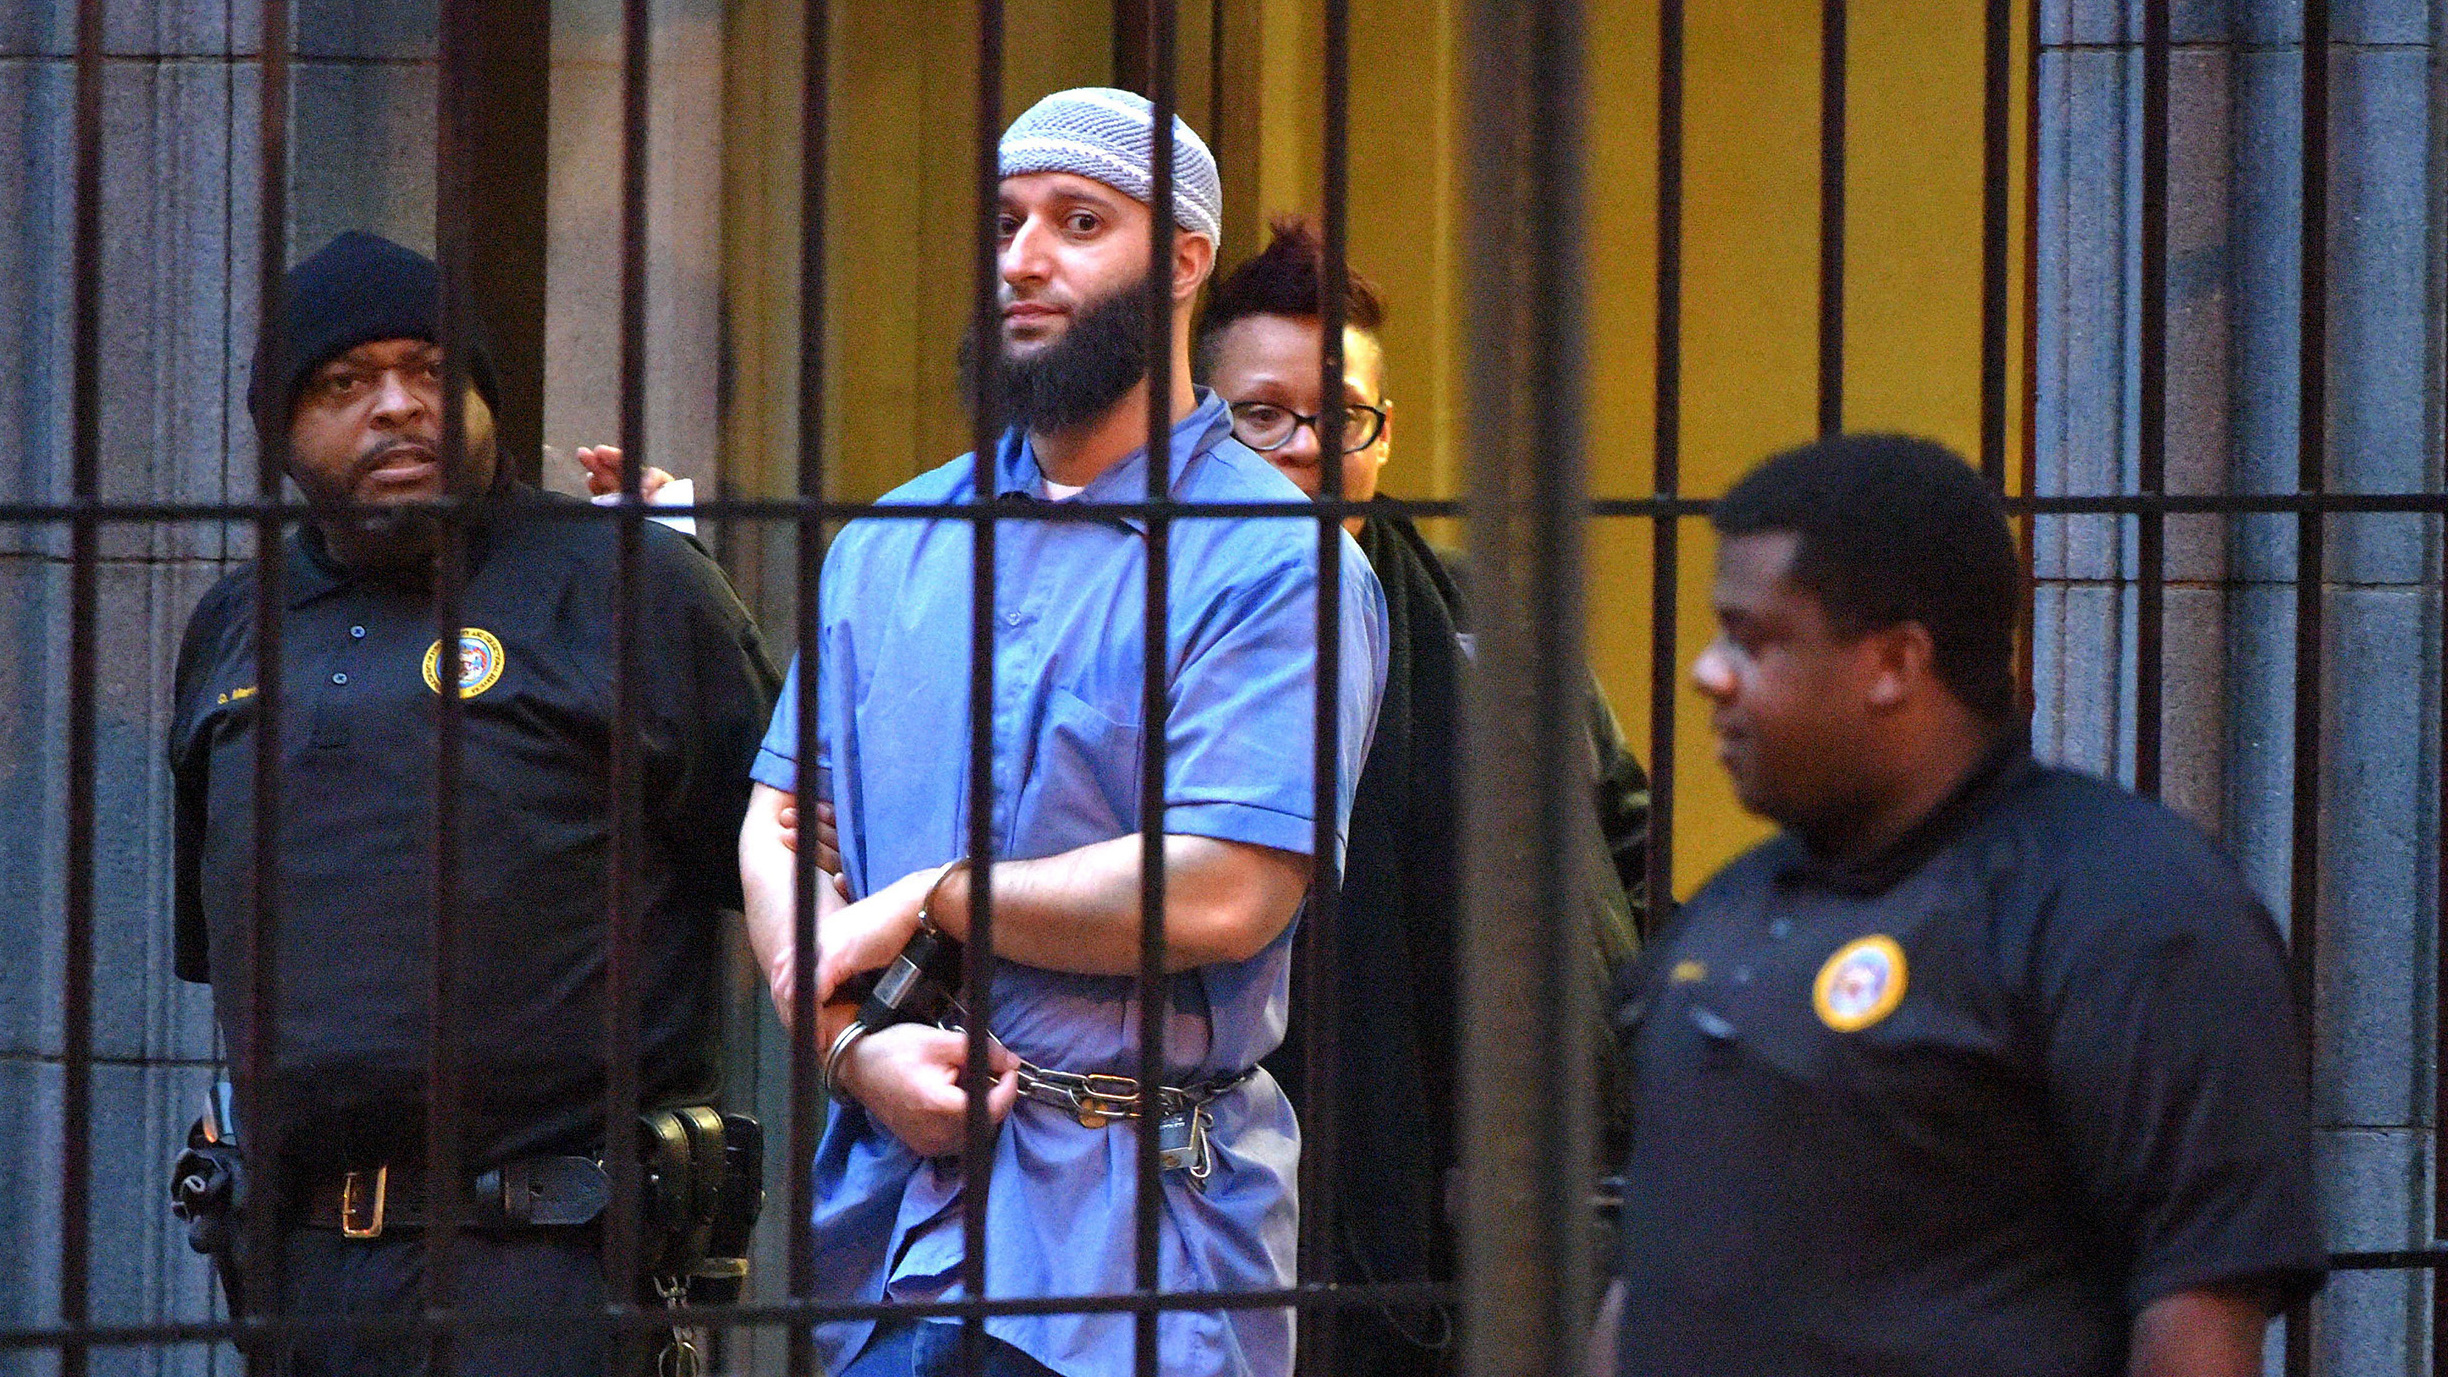 Court Of Special Appeals Upholds Ruling Granting Adnan Syed New Trial